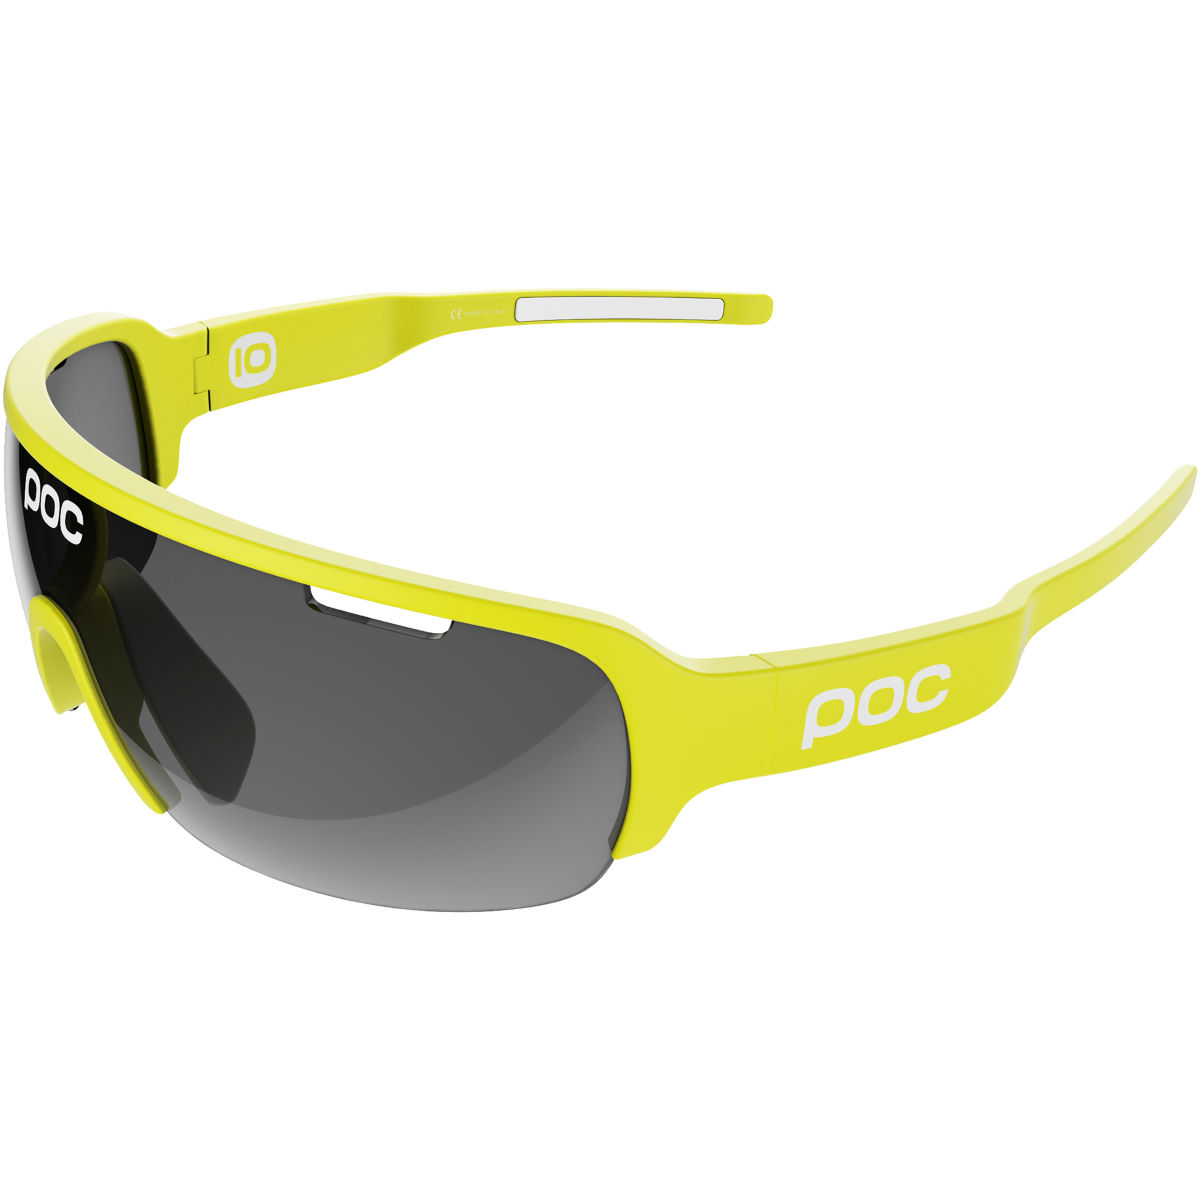 POC DO Half Blade Sunglasses - Gafas de sol